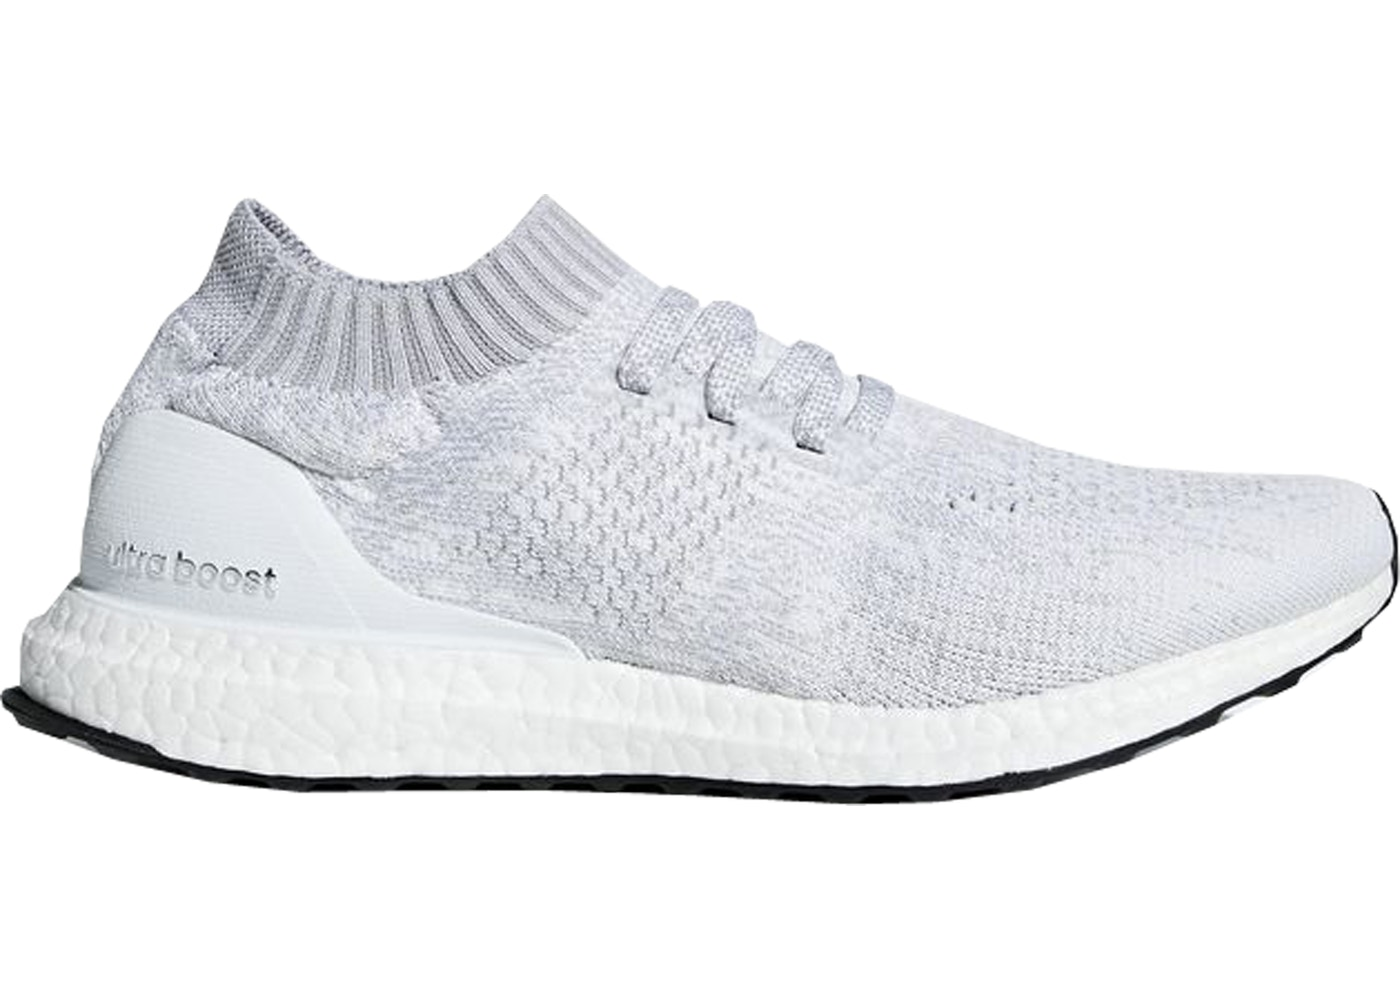 802d1fcff67 adidas Ultra Boost Uncaged White Tint - DA9157